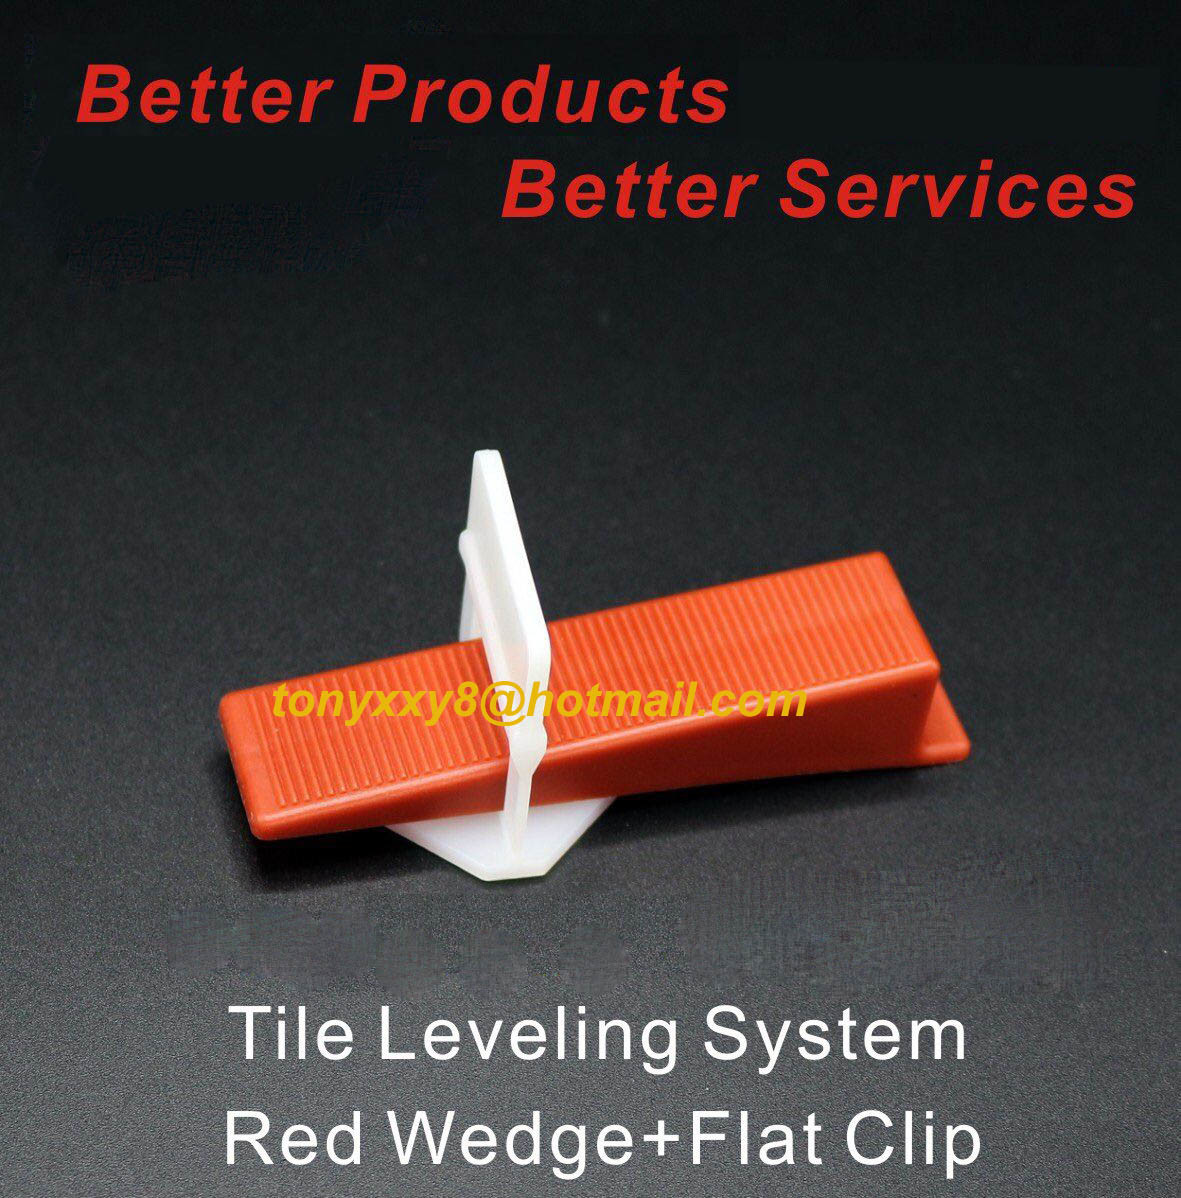 China tile leveling spacers tile leveling system clip tile china tile leveling spacers tile leveling system clip tile leveling system pliers china tls tile spacer dailygadgetfo Images